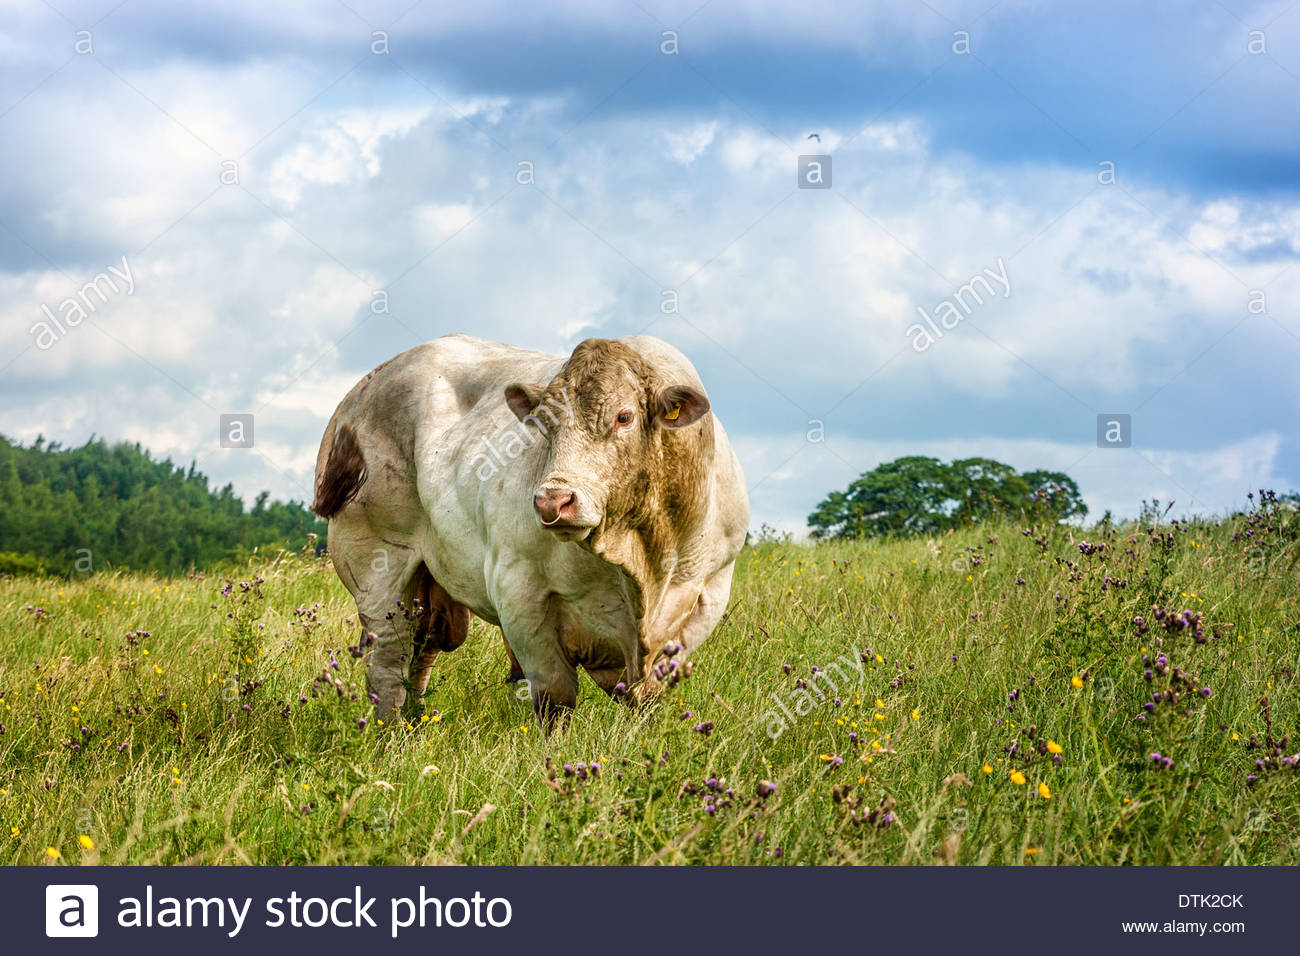 Bull a large white breeding bull standing in a field surveying his territory - Stock Image